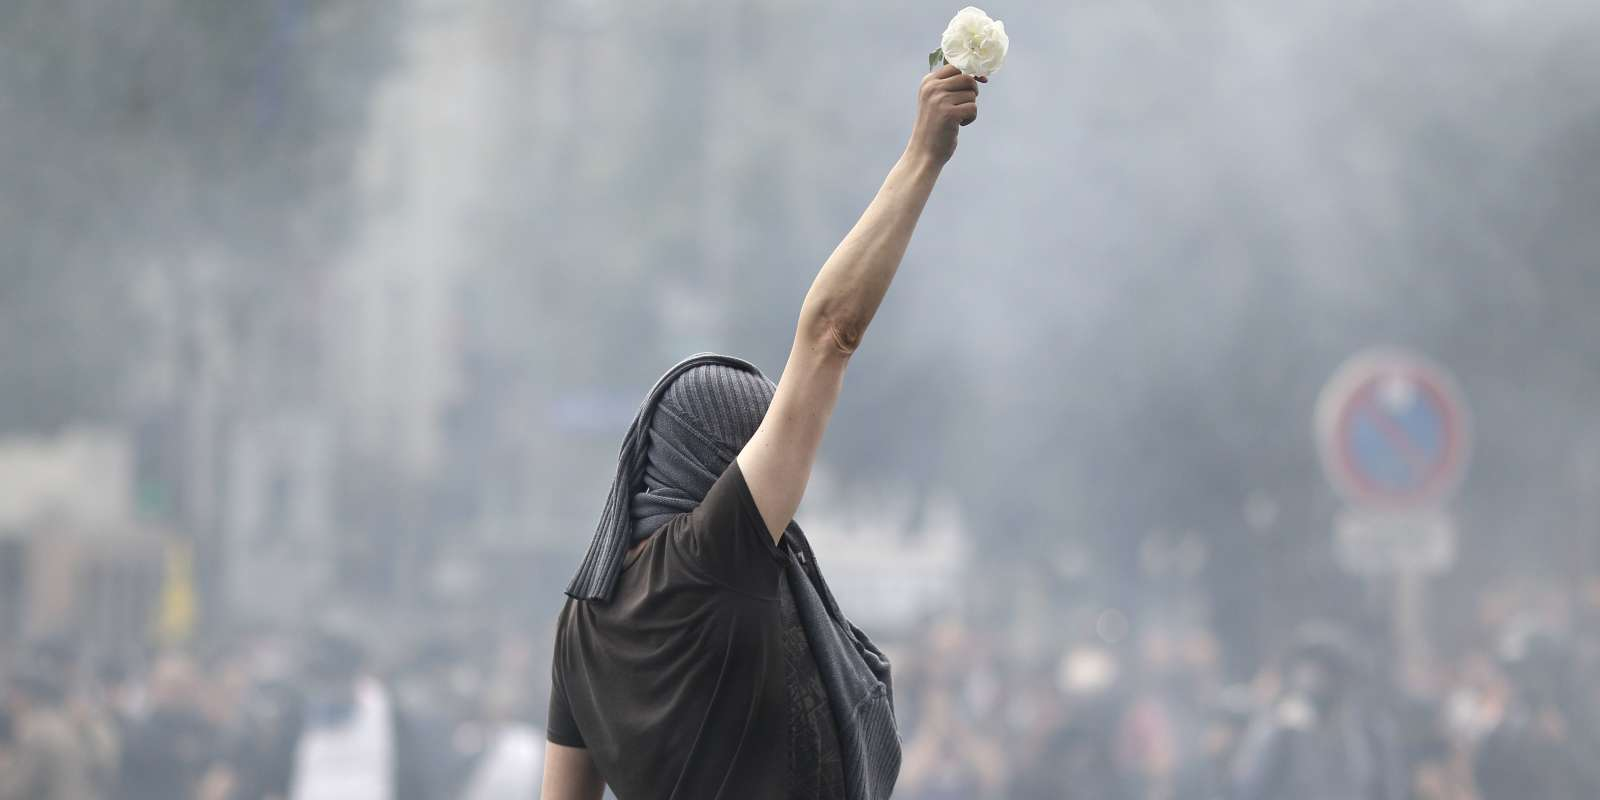 A protester holds a white rose during a protest against the government's labour market reforms in Paris, on May 26, 2016. The French government's labour market proposals, which are designed to make it easier for companies to hire and fire, have sparked a series of nationwide protests and strikes over the past three months.